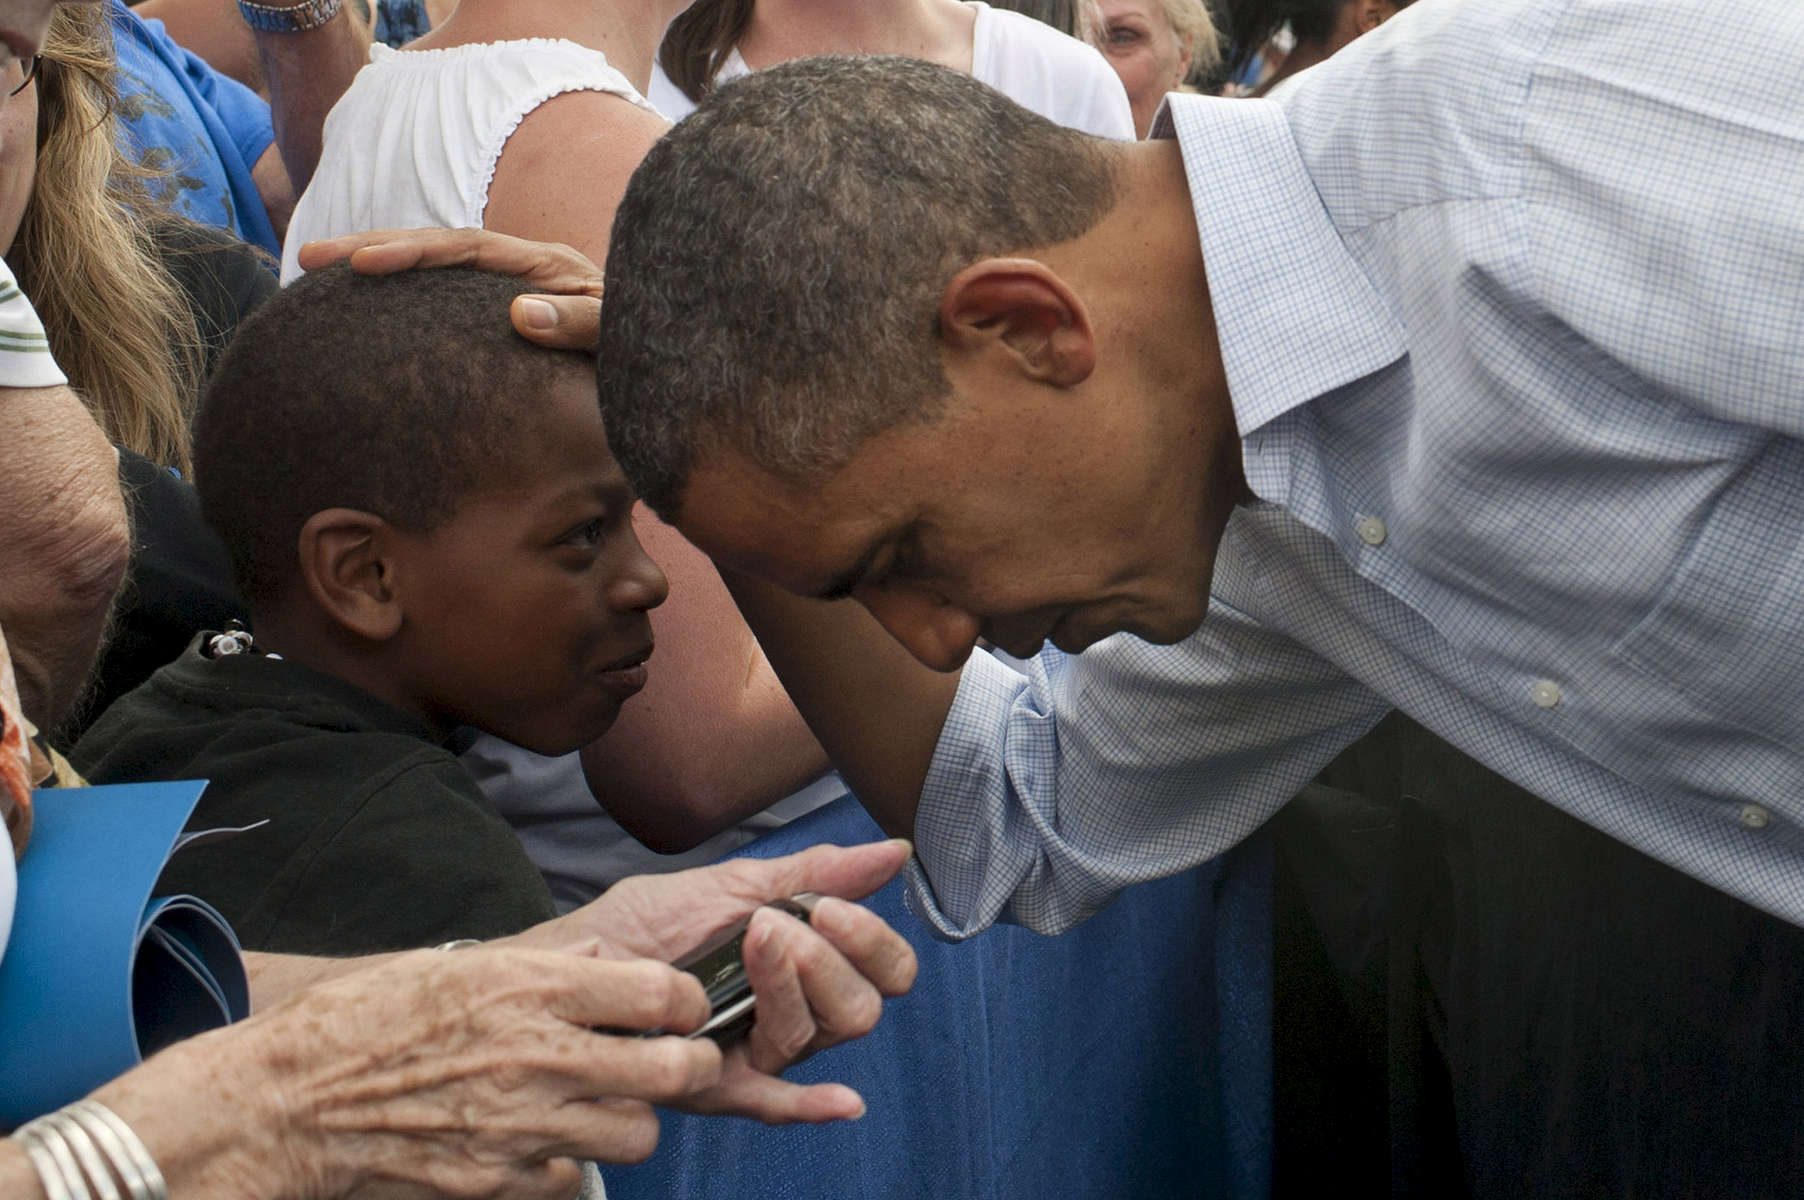 September 2, 2012 - Boulder, CO: President Barack Obama greets a young boy after speaking at a campaign event at the University of Colorado Boulder. (Scout Tufankjian for Obama for America/Polaris)